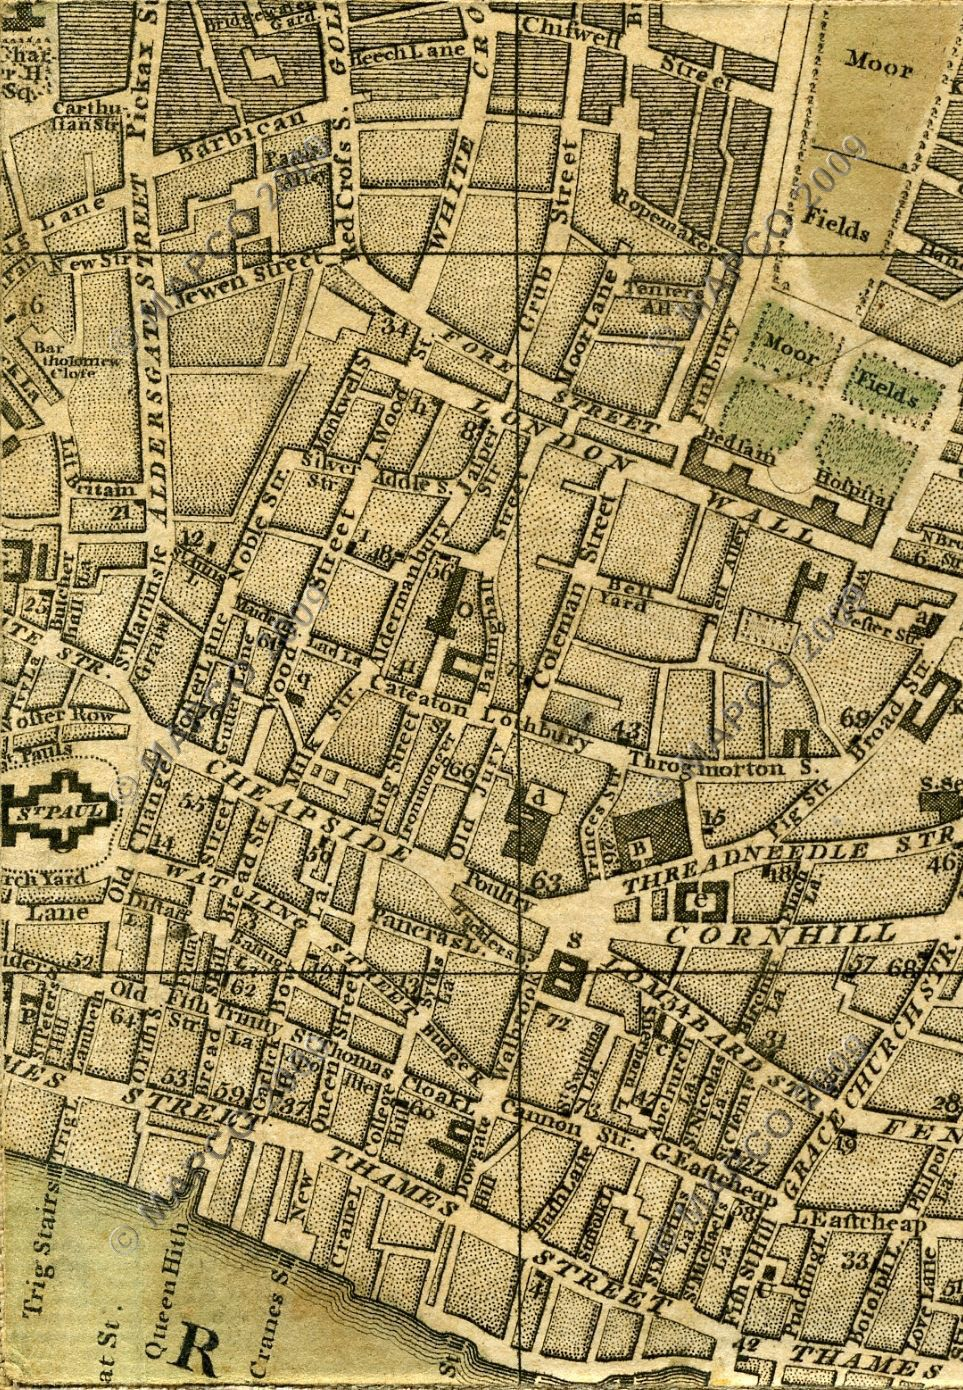 Old Street London Map.Mapco Map And Plan Collection Online Bowles S Reduced Plan Of